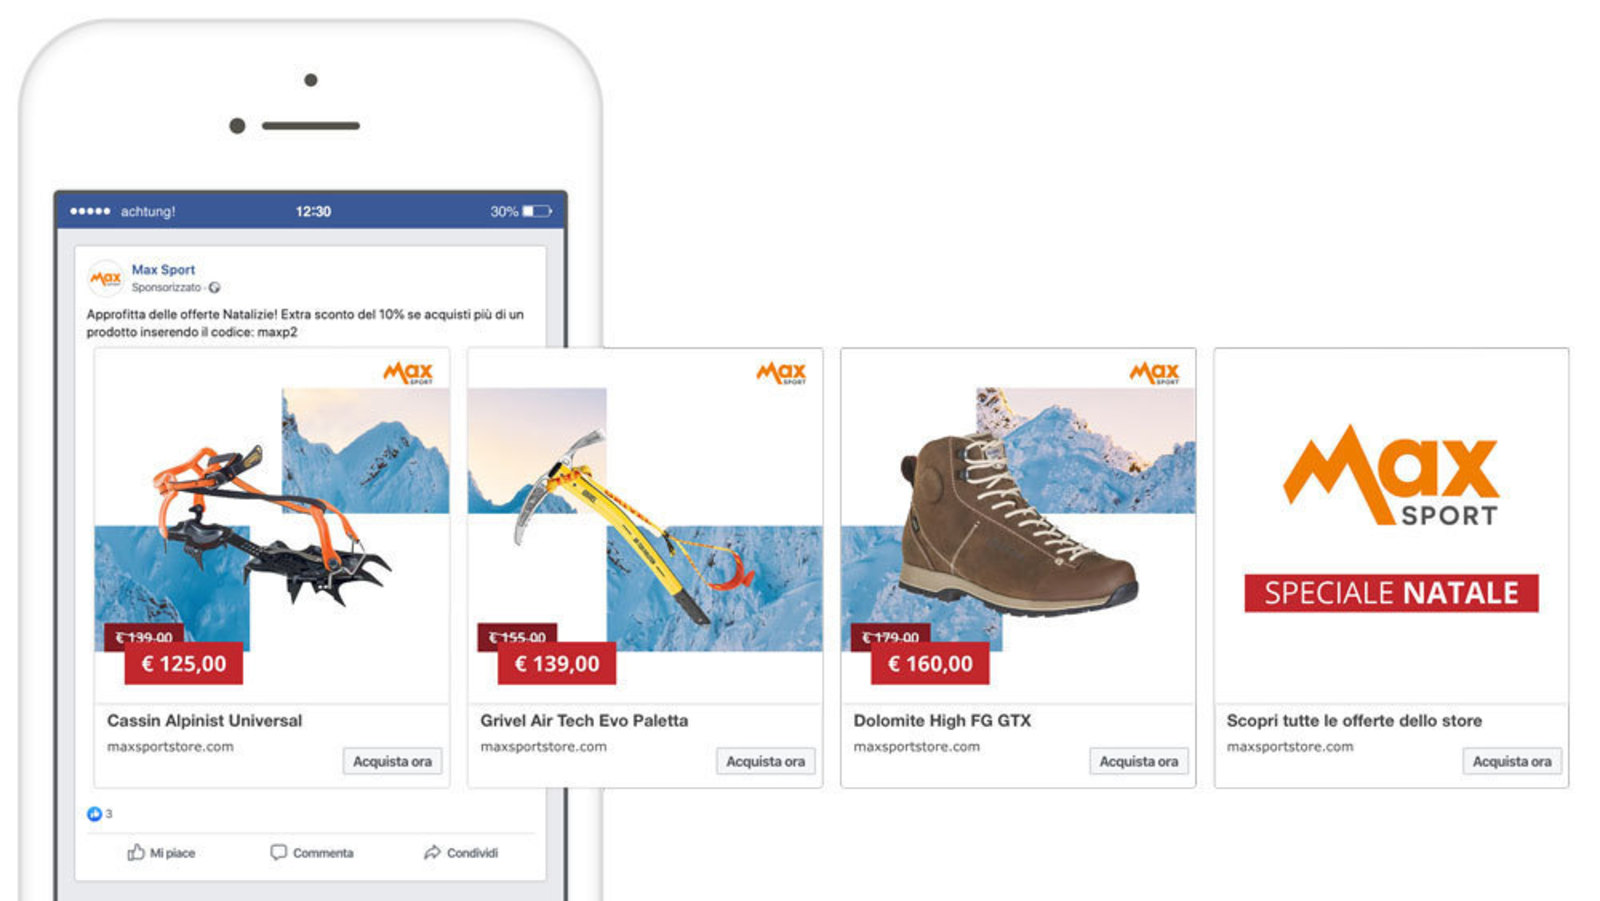 Mockup of a Facebook carousel of mountain equipment for sale on Max Sport